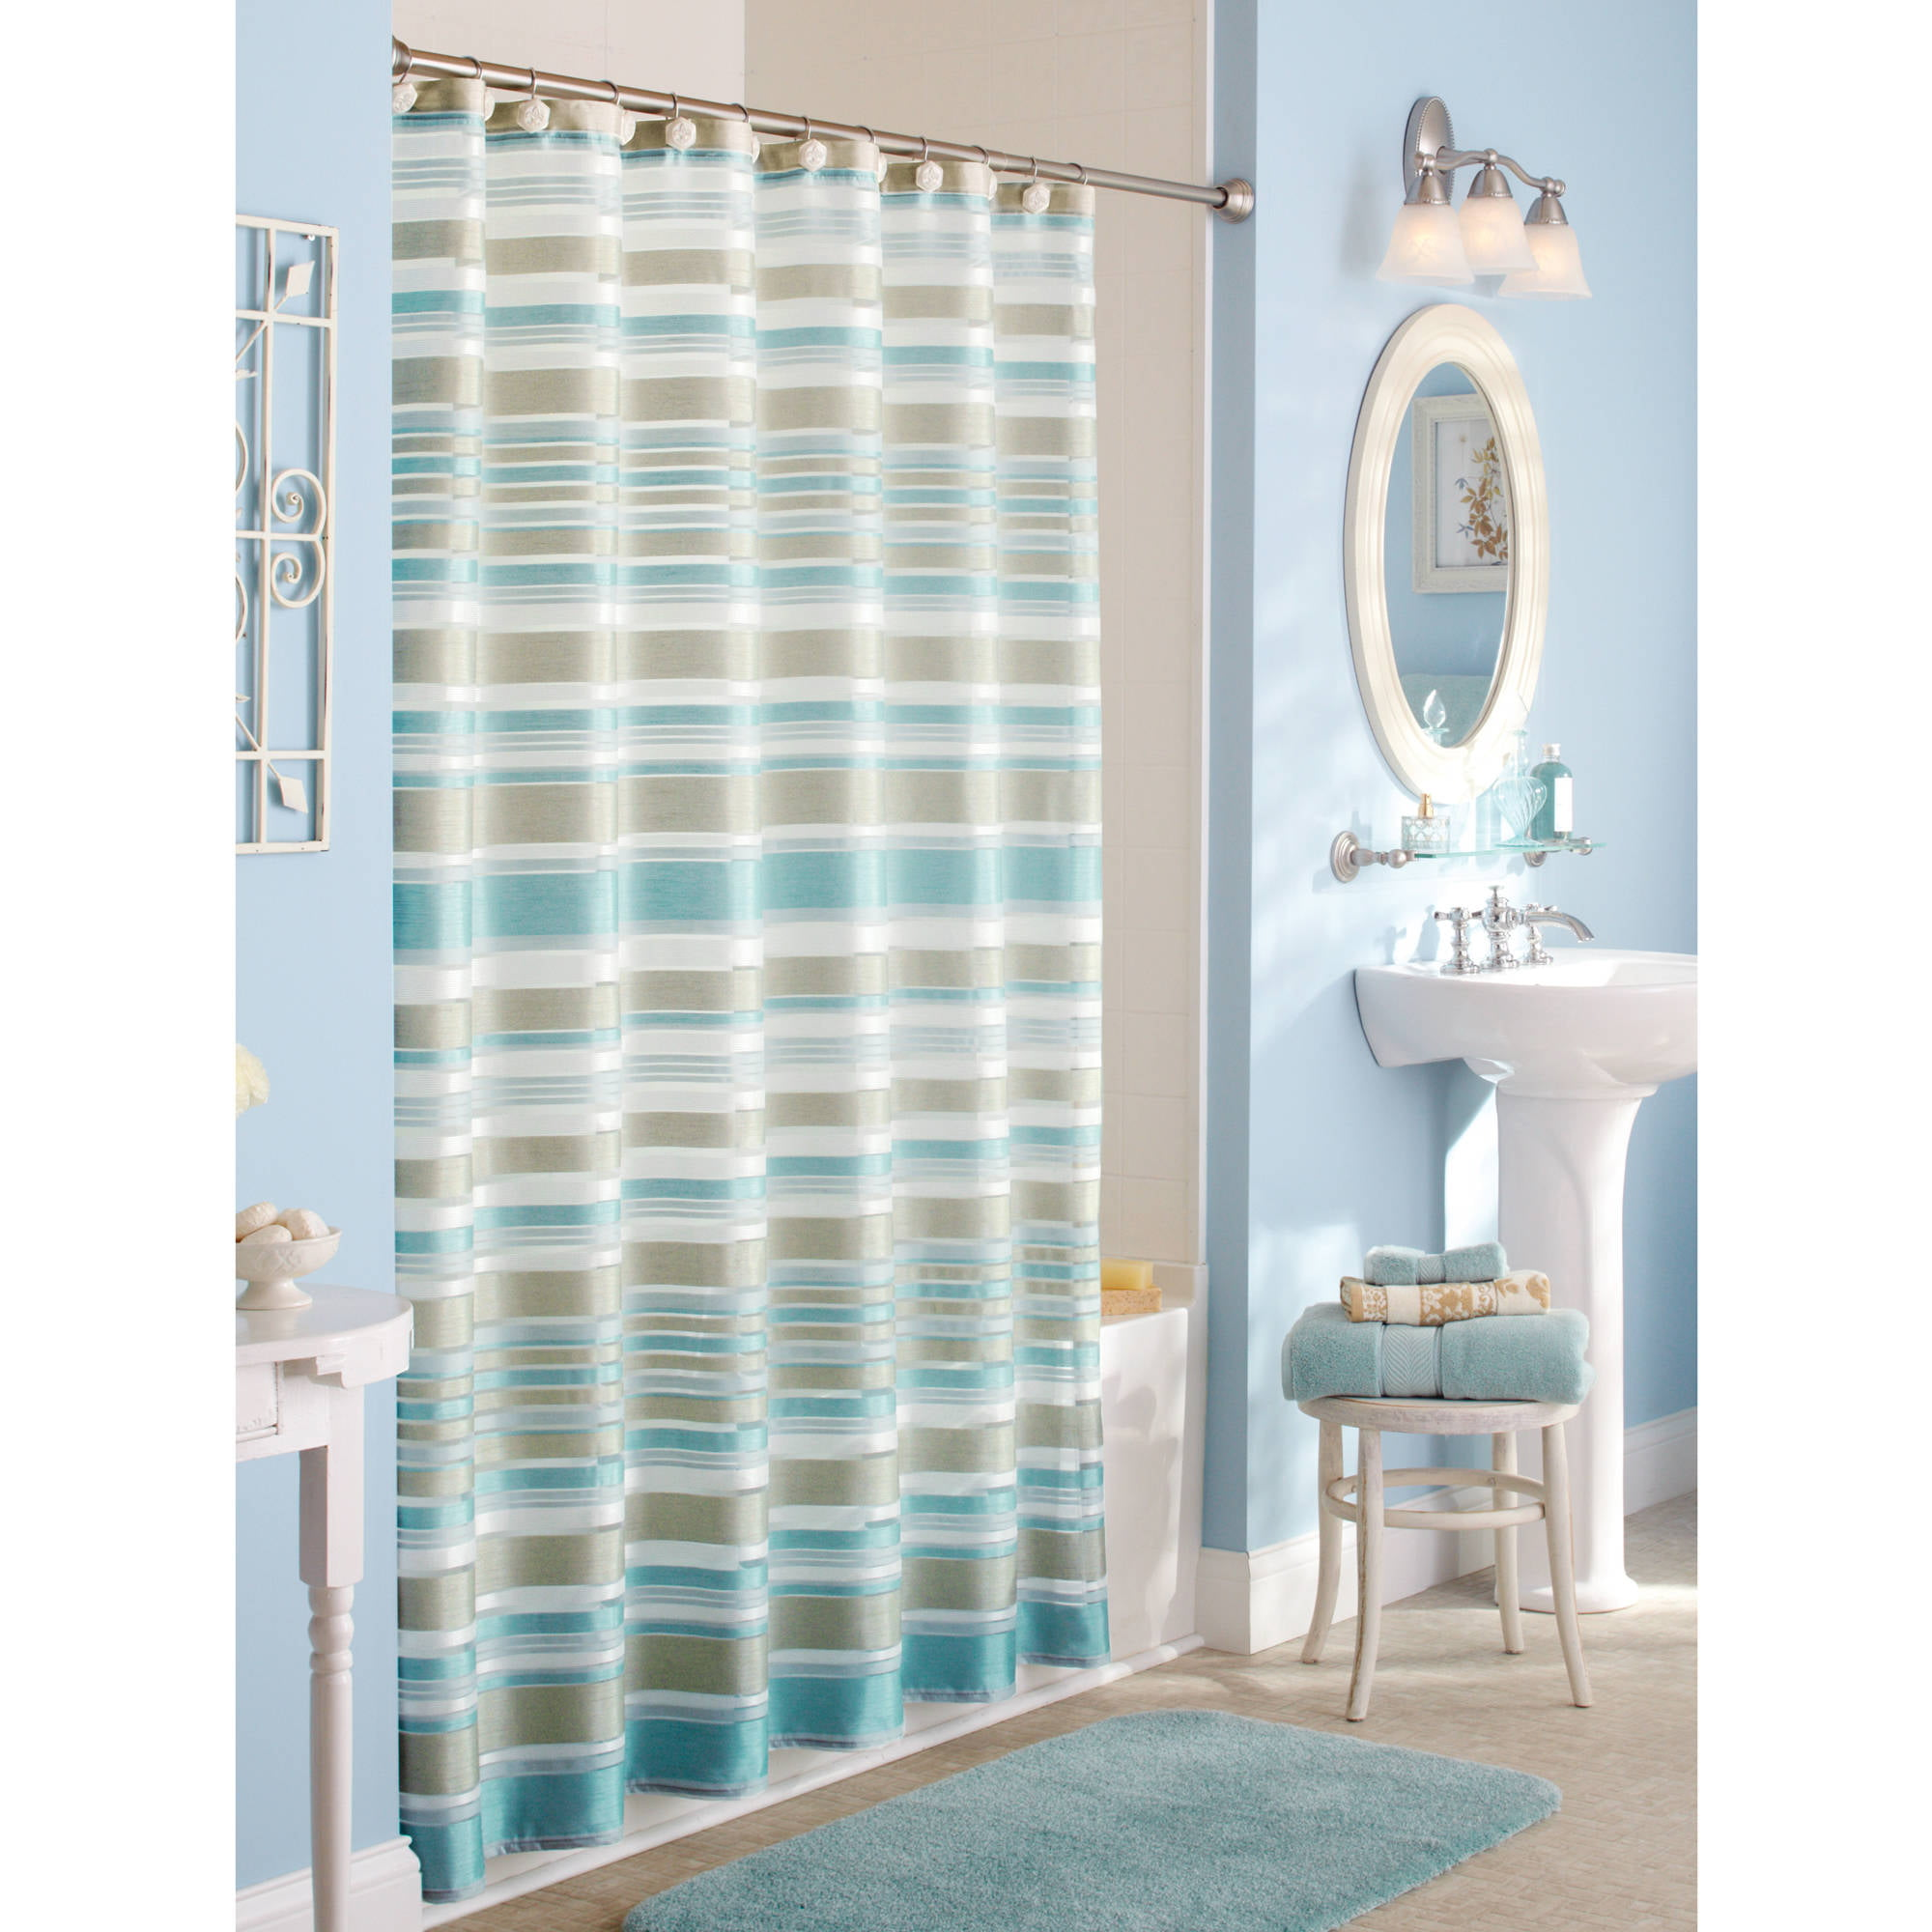 InterDesign Ombre Chevron Fabric Shower Curtain Standard 72 X Blue Multi